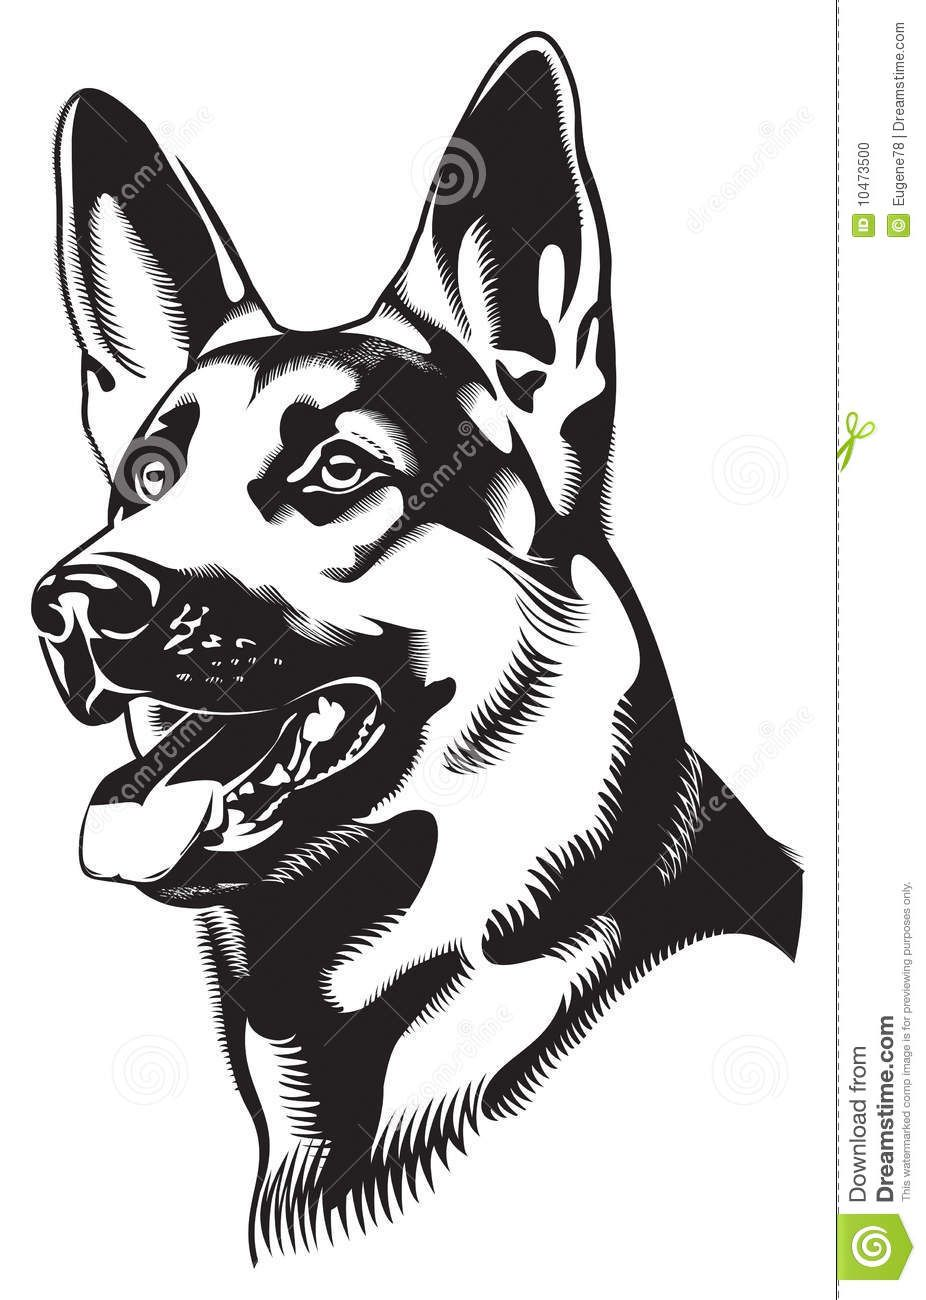 Dog Shepherd Download From Over 64 Million High Quality Stock Photos Images Vectors Sign Up For Fr Dog Stencil German Shepherd Art German Shepherd Colors [ 1300 x 926 Pixel ]